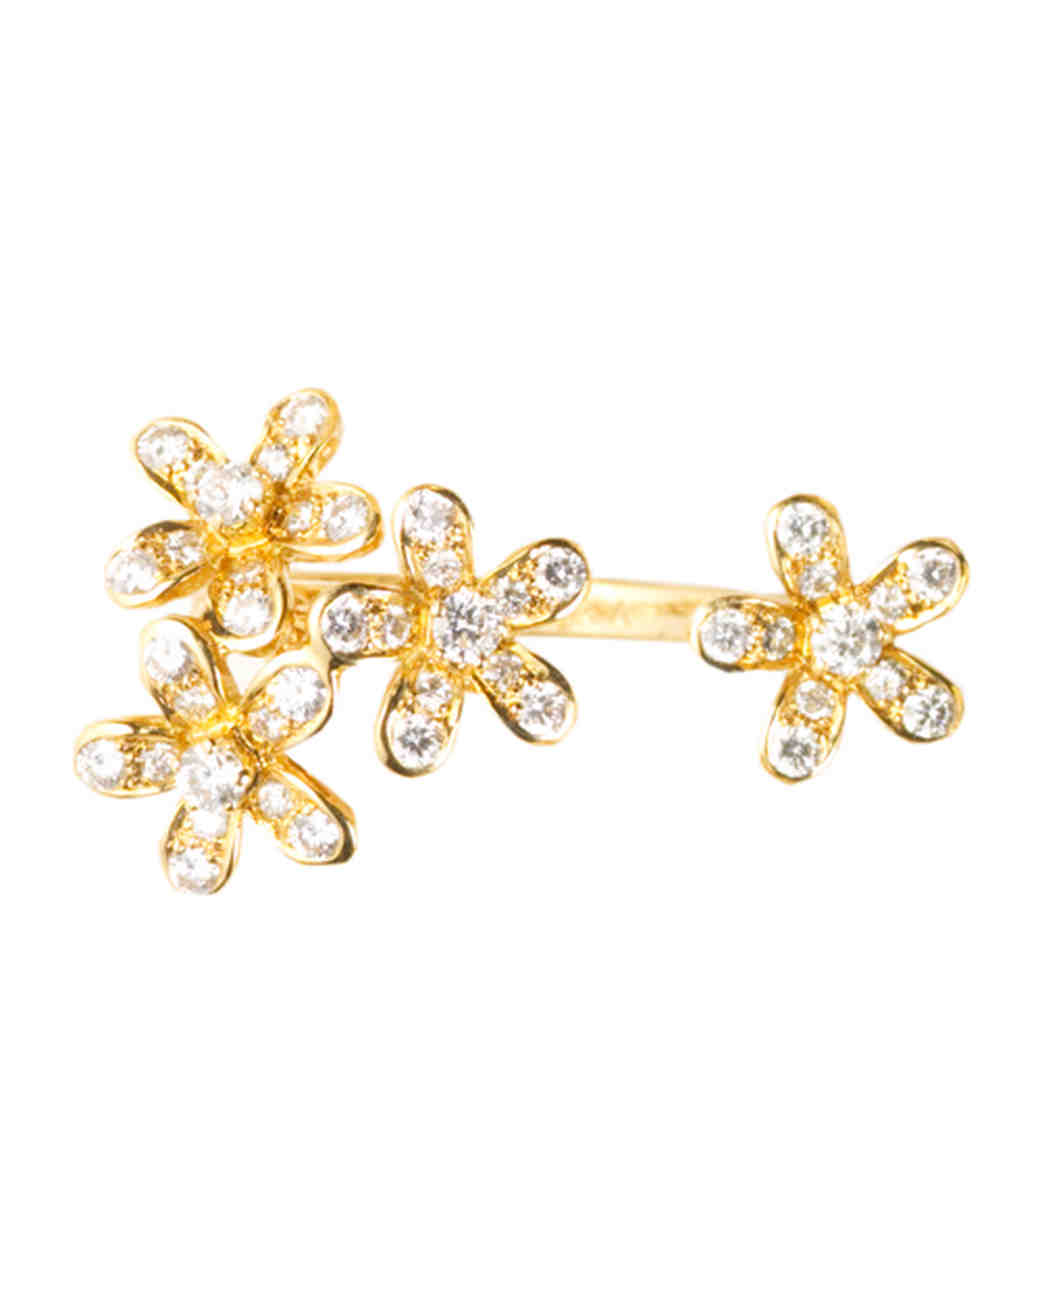 Socrate Yellow Gold Engagement Ring